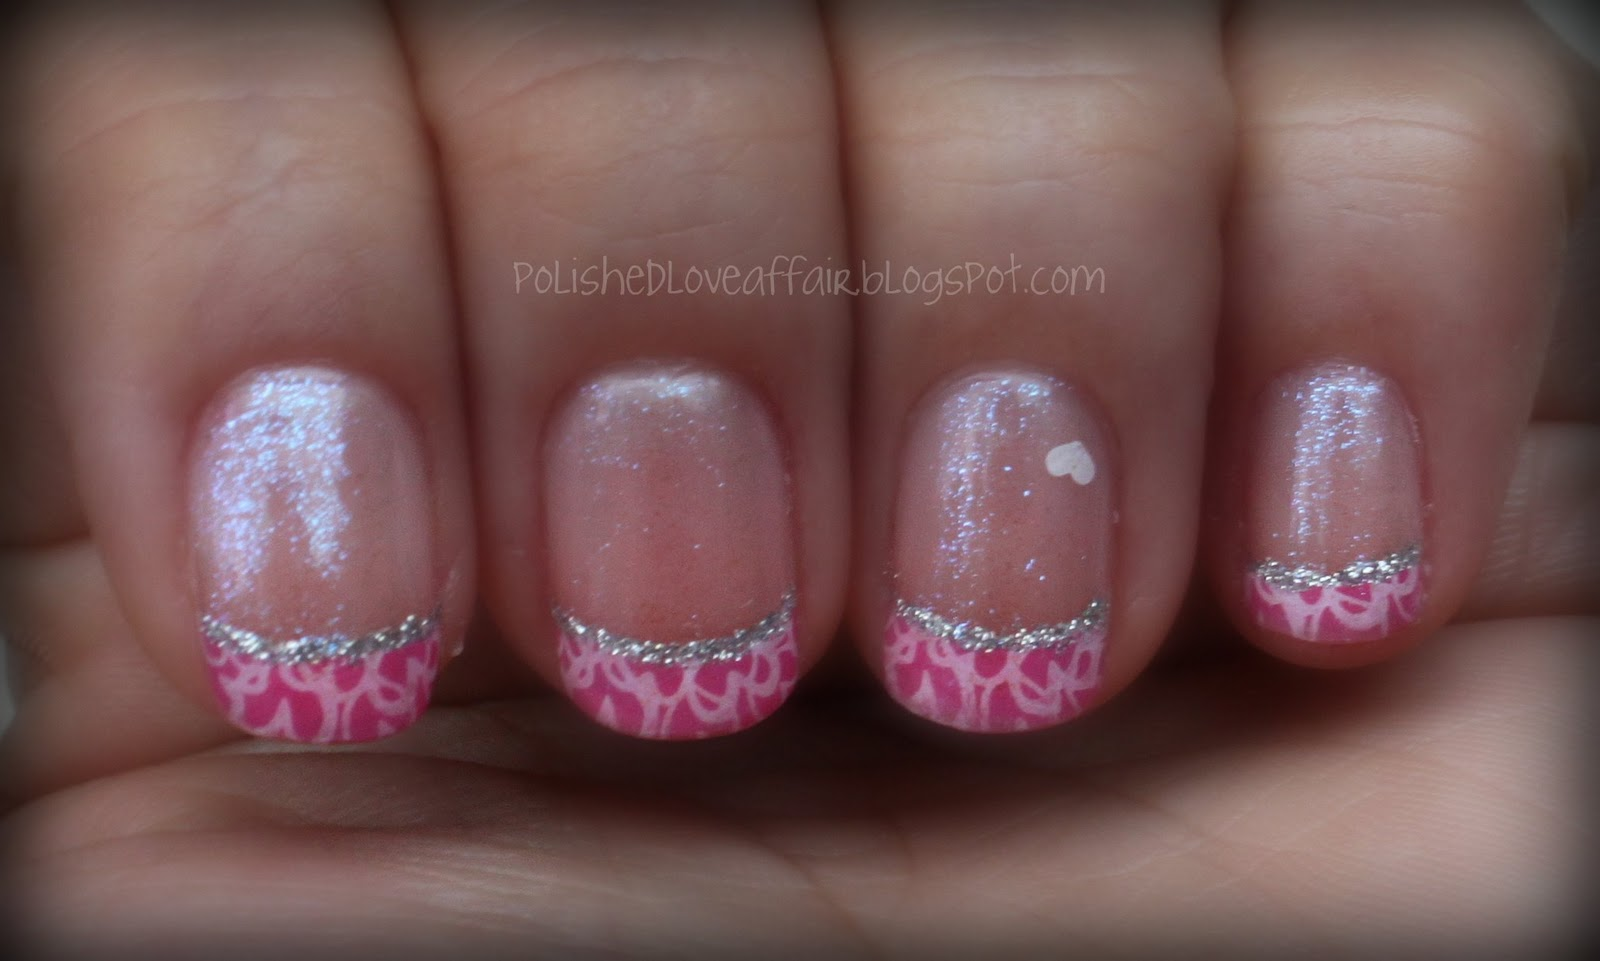 Hairstyle and Fashion: Hot Pink Nail Tips